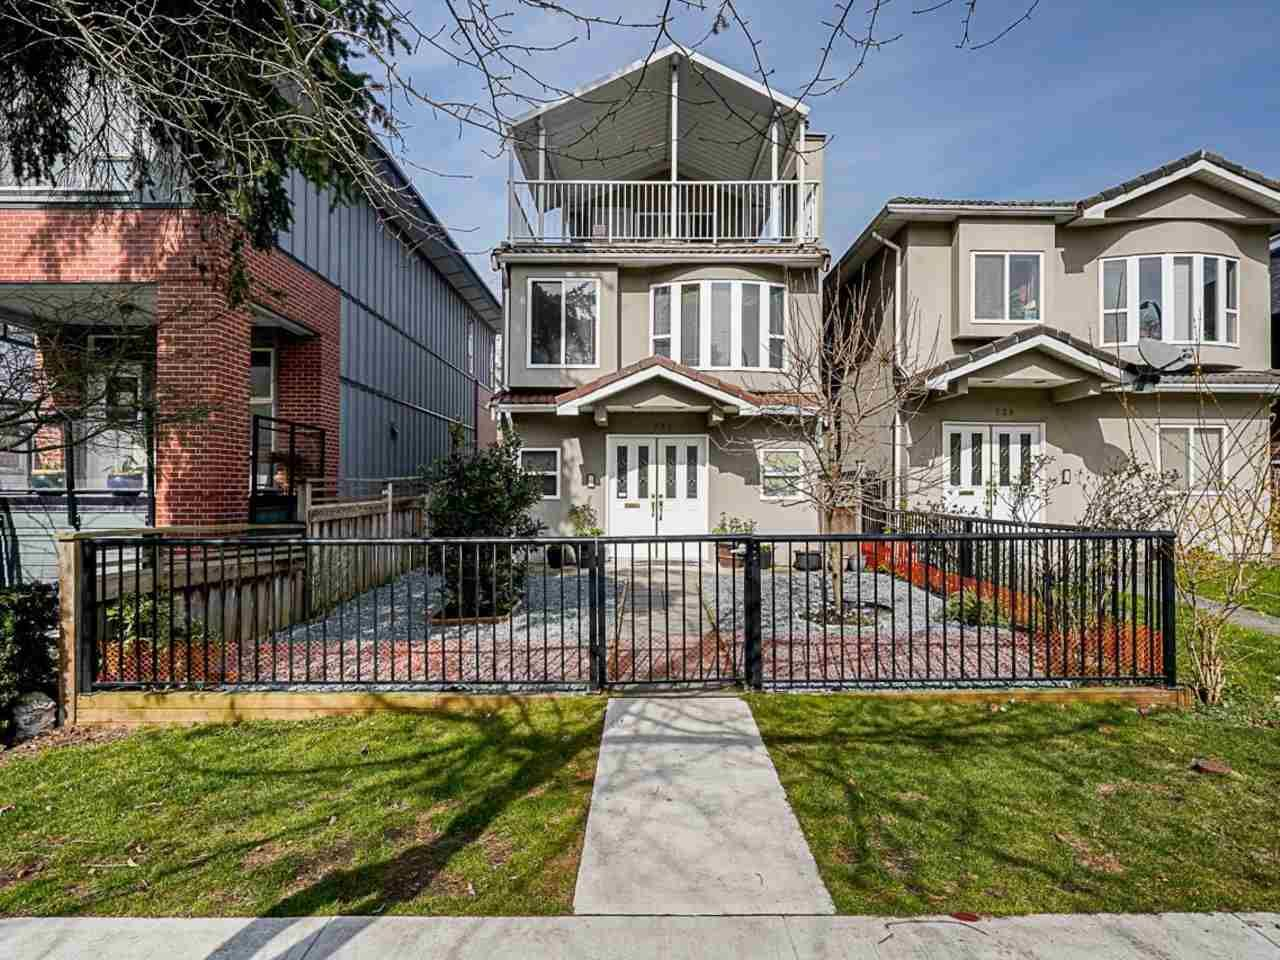 Main Photo: 735 E 20TH Avenue in Vancouver: Fraser VE House for sale (Vancouver East)  : MLS®# R2556666